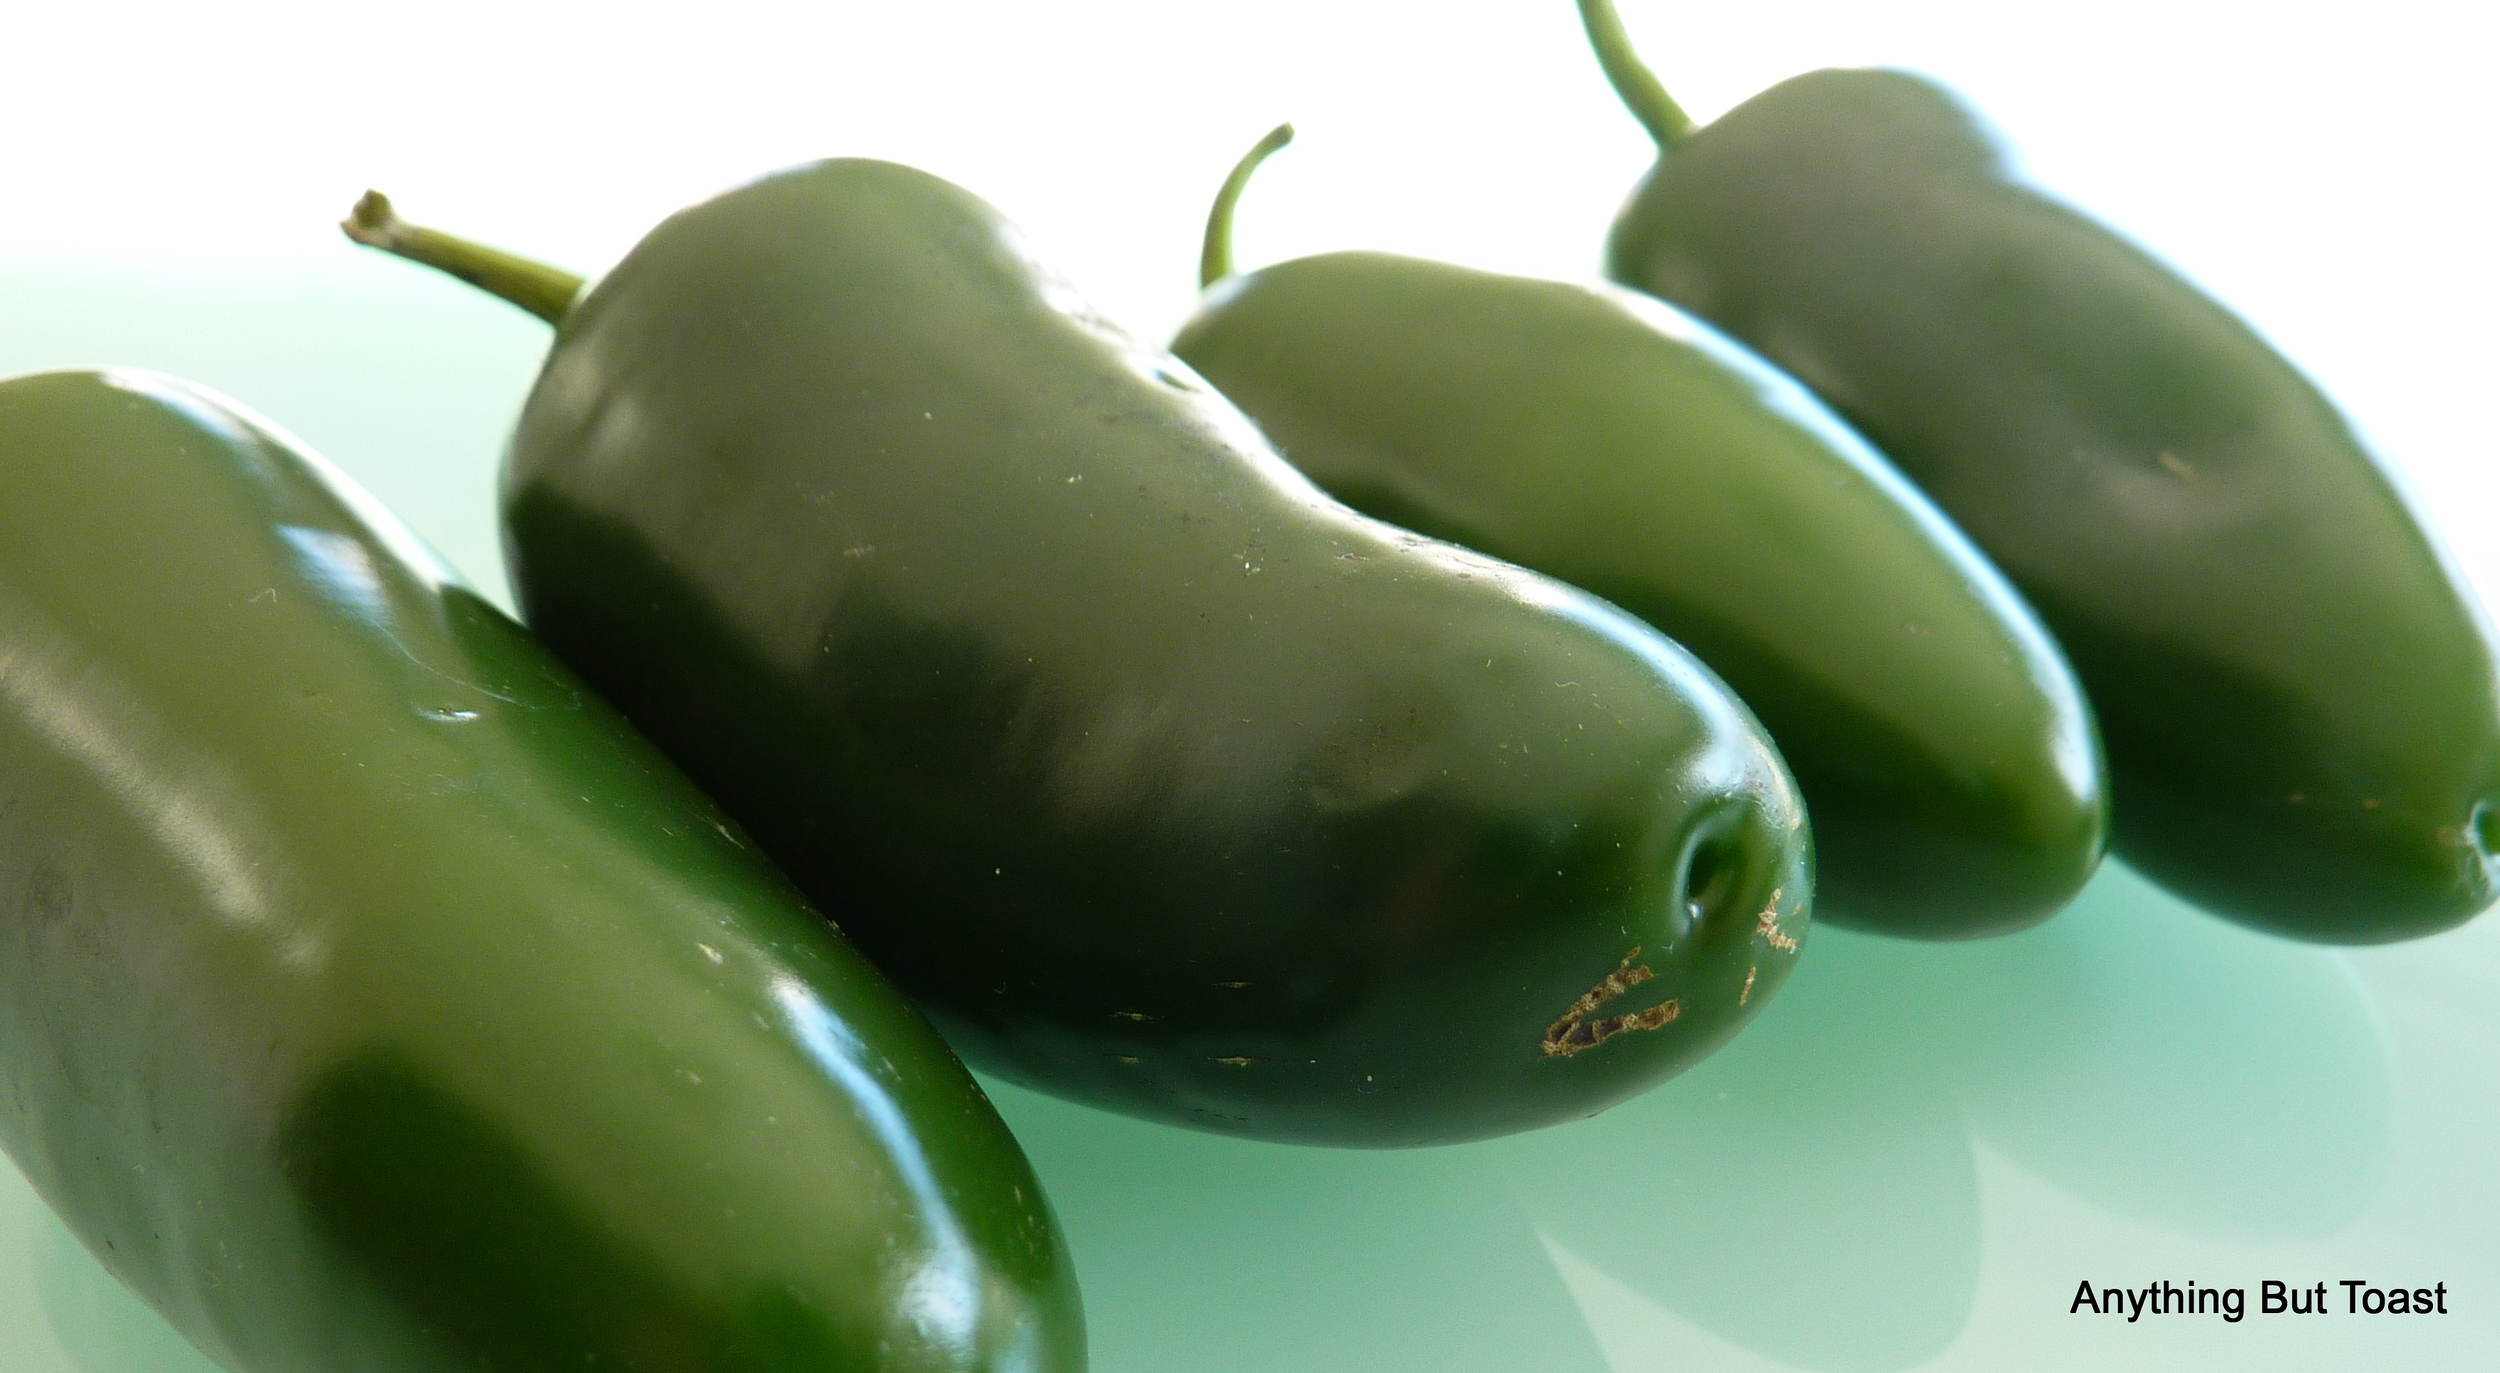 Jalapeno anyone! Mr ABT loves all peppers and I am having fun experimenting with different stuffings.  Stay tuned for the winner!